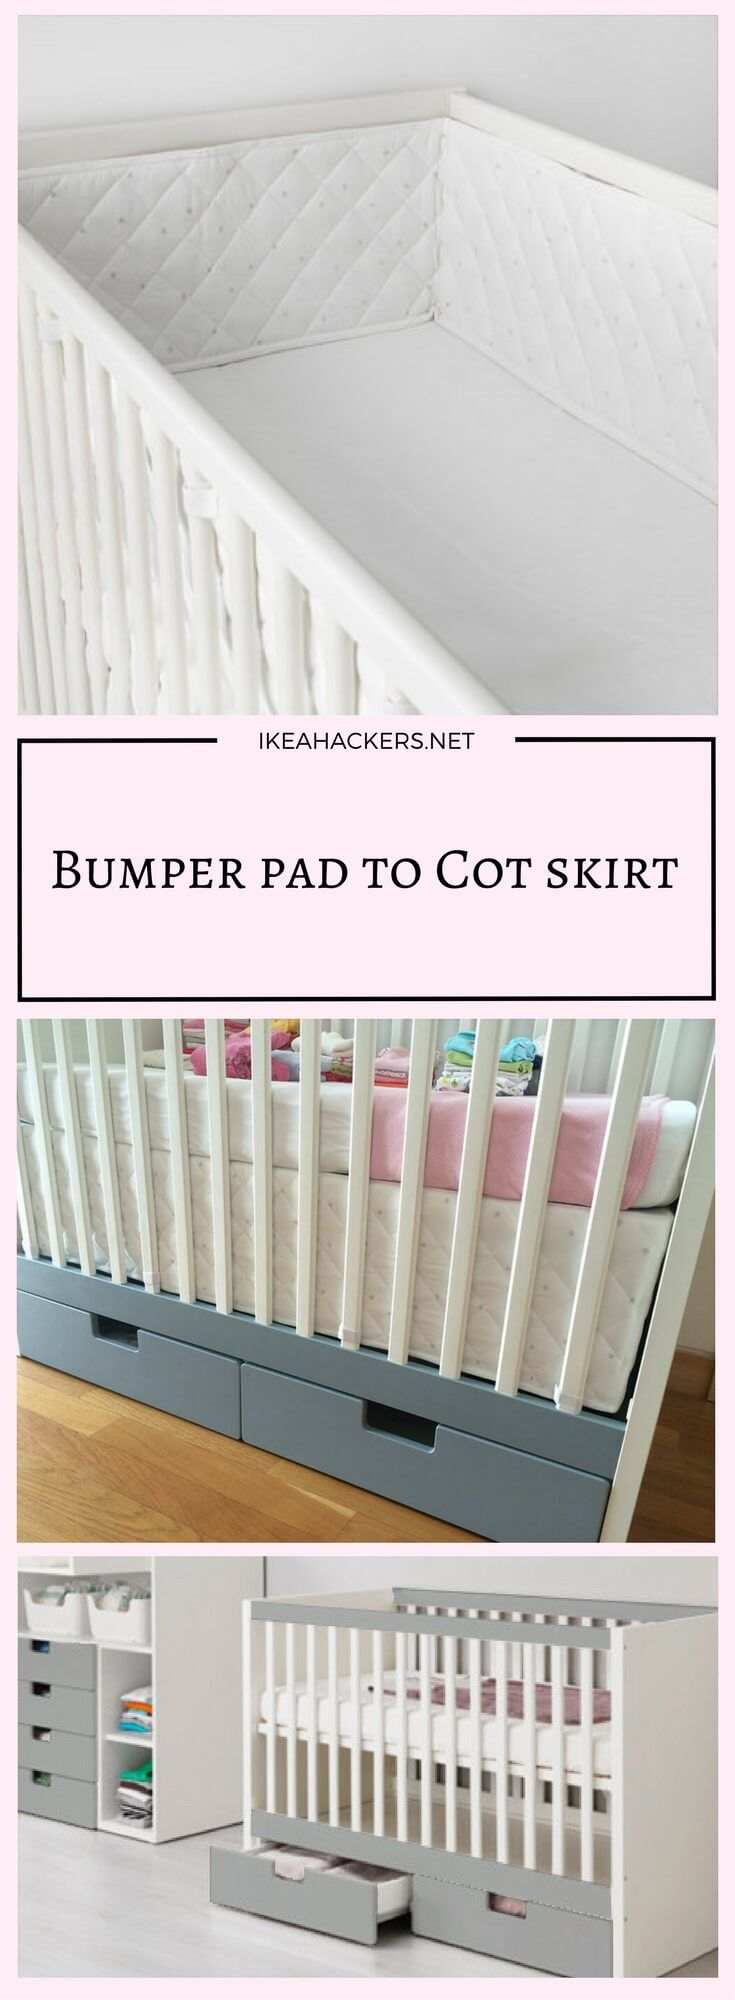 coat bumpers cot and rail pads grey sids over there sets newborn white cribs target breathable ideas bumper crib baby much set burling cri boys girl concern pad for dable bedding